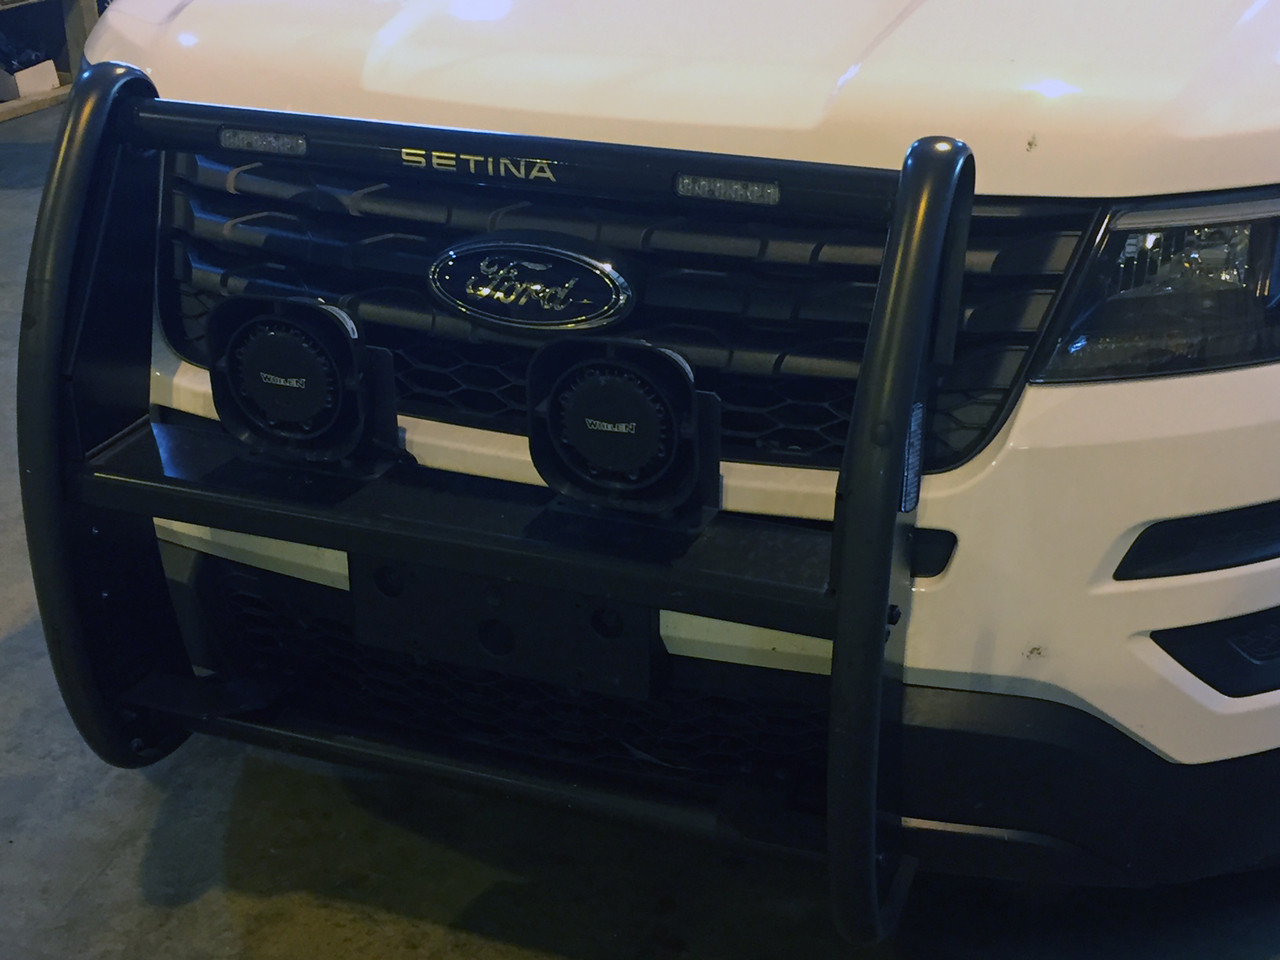 Setina Push Bumper PB400 Grill Guard for Cars SUVs Trucks and Vans- for Newer Year Model Police, Civilan, and Emergency Vehicles